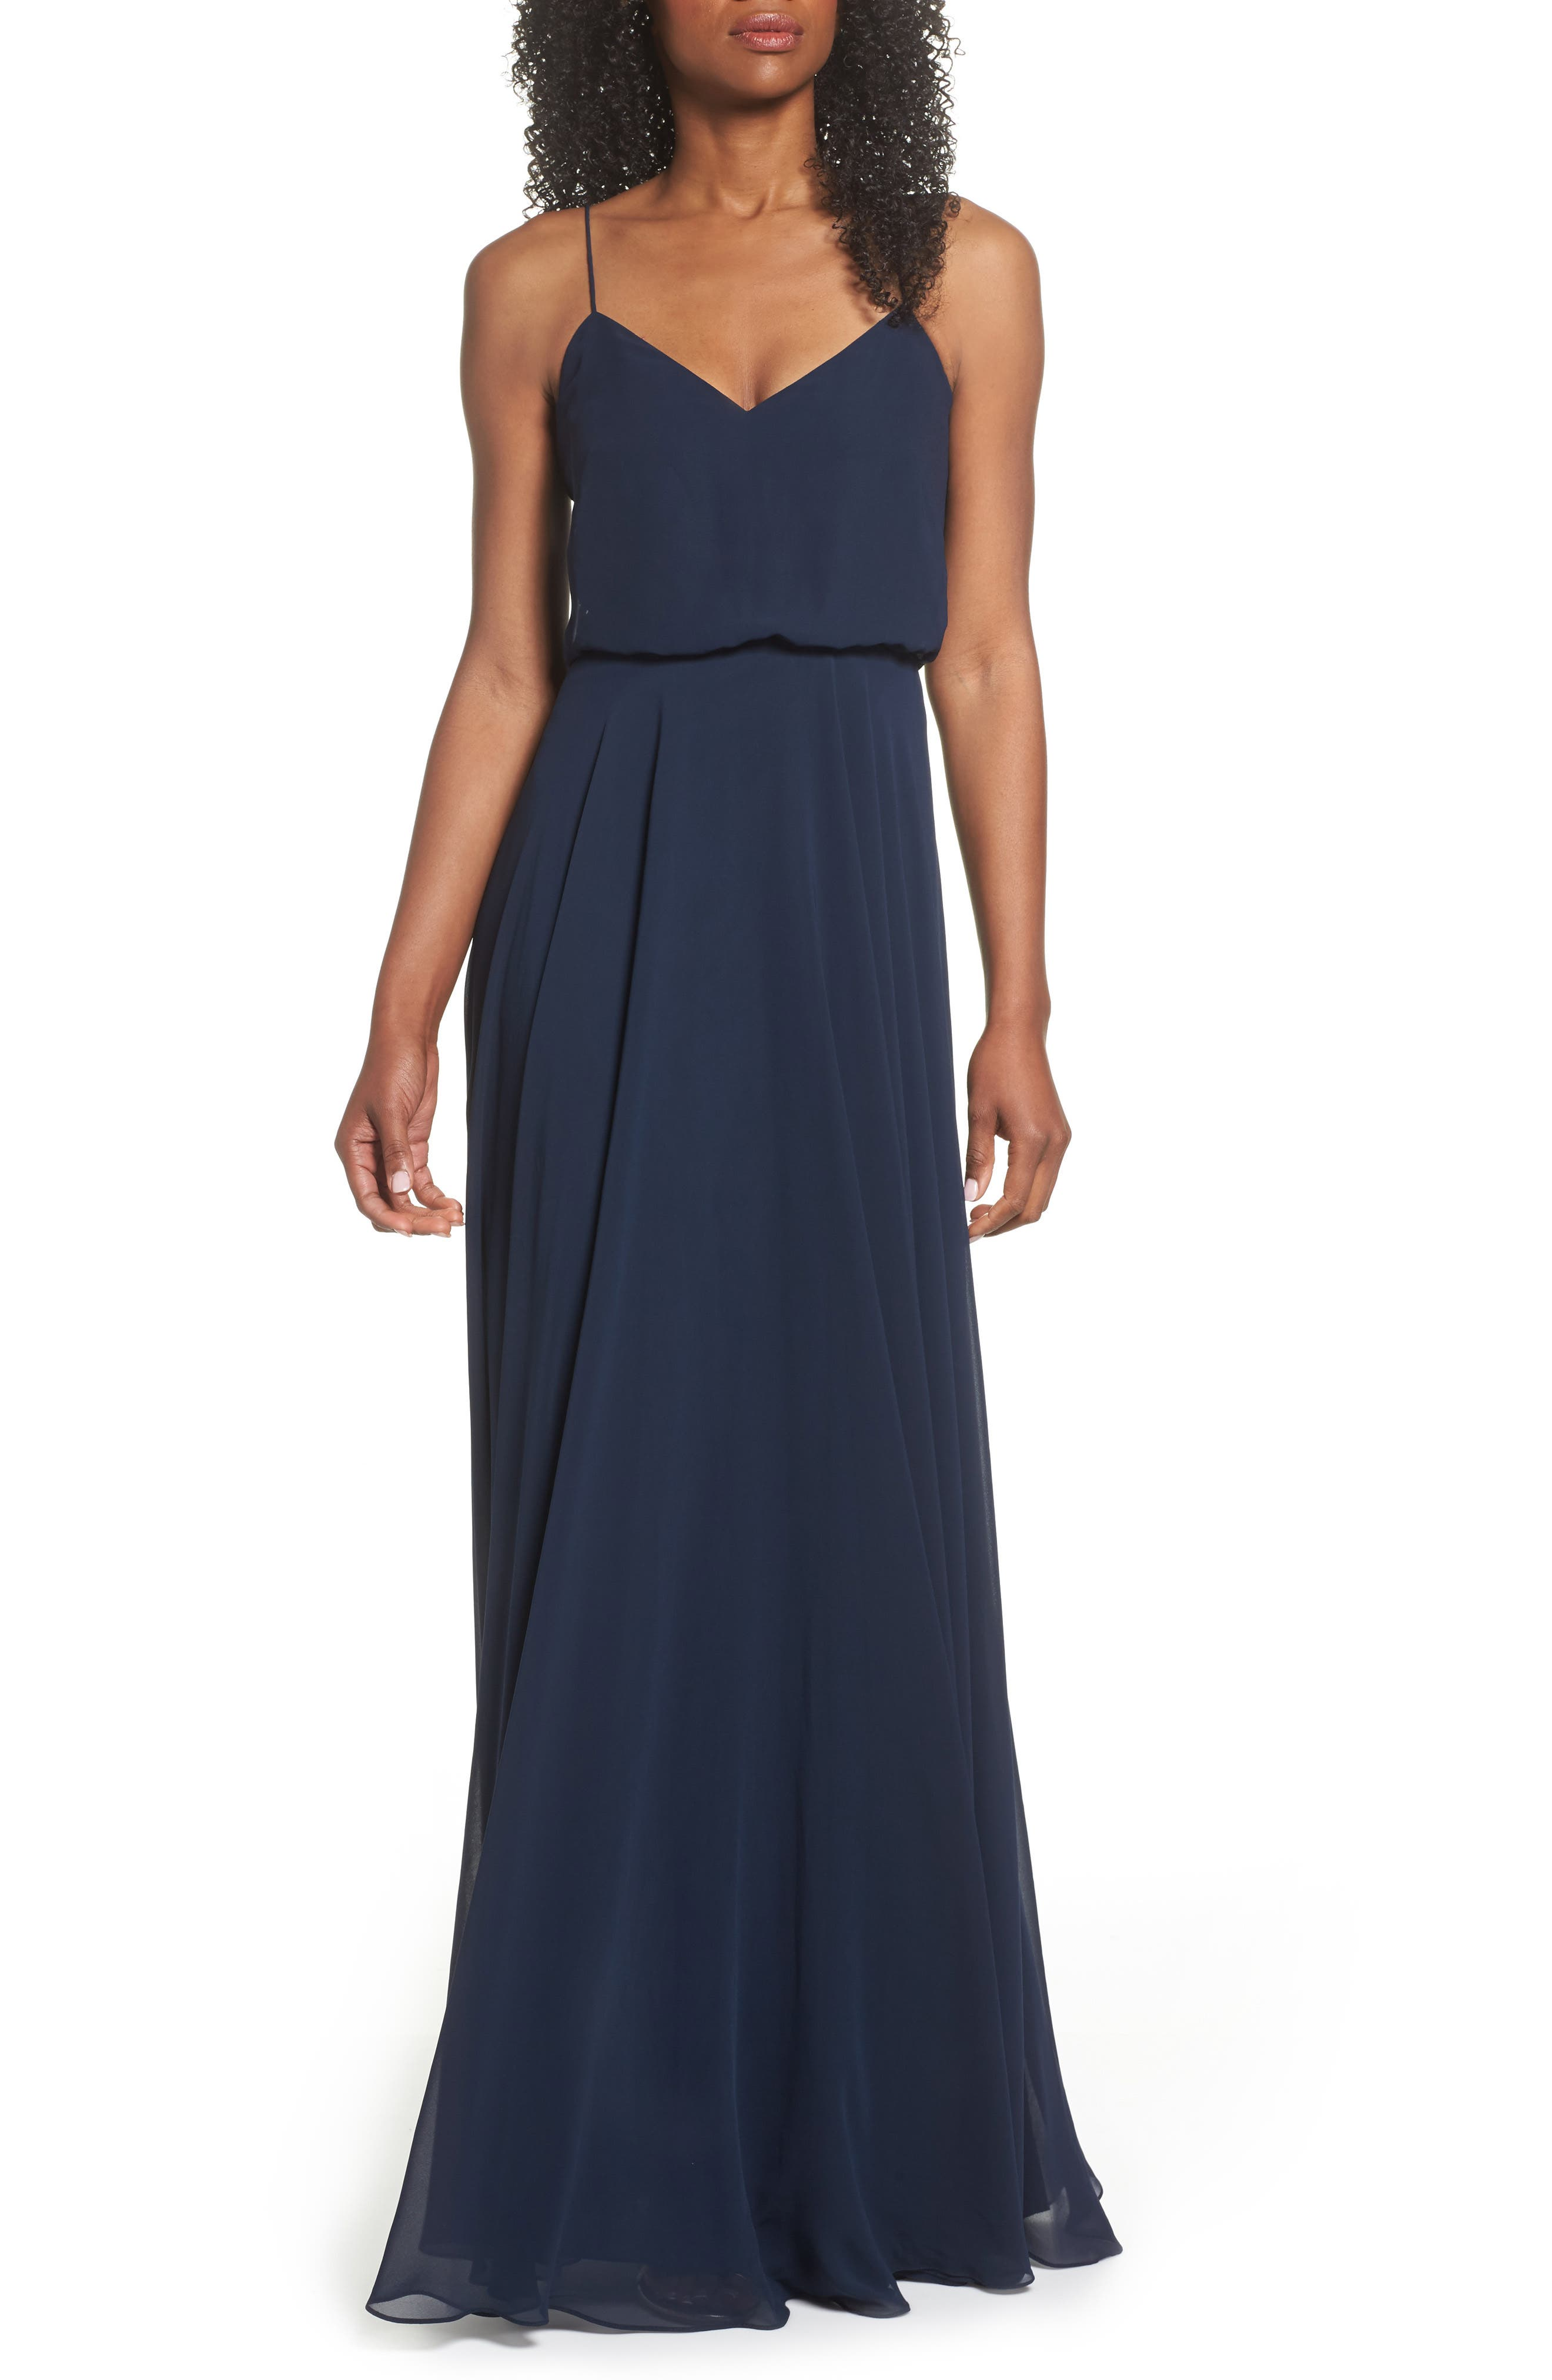 Inesse Chiffon V-Neck Spaghetti Strap Gown,                         Main,                         color, NAVY